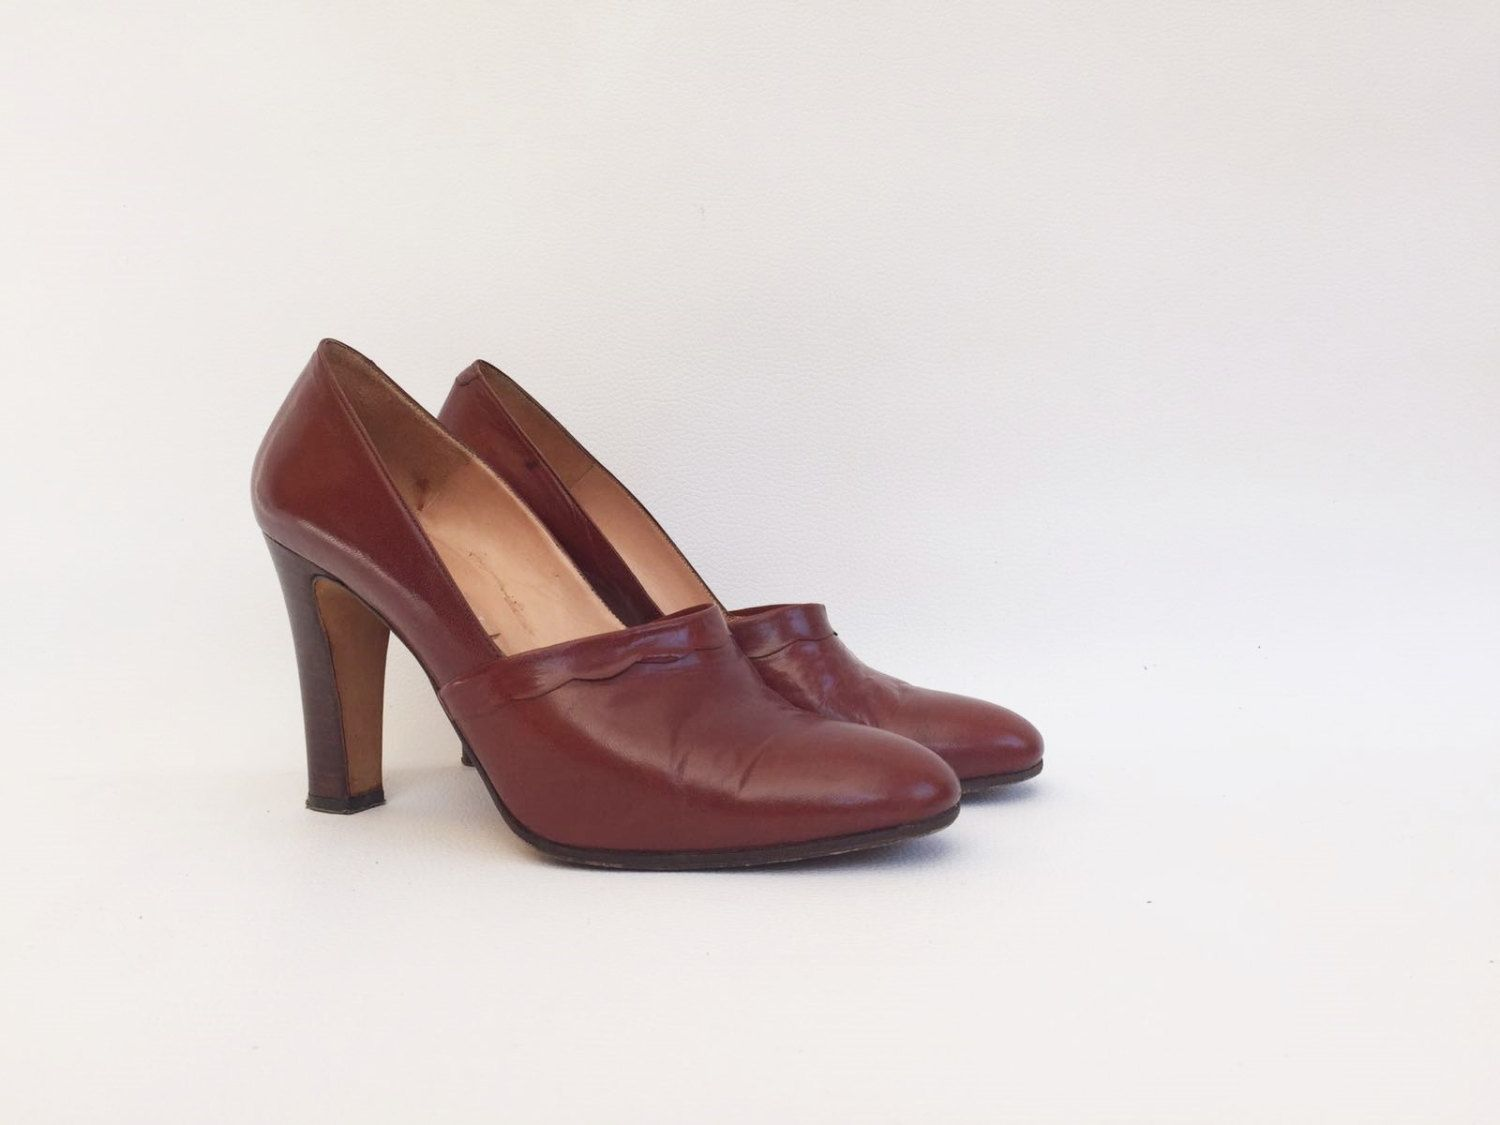 Leather Chestnut Pumps / 1970 Brown Fabric Pumps / Vintage 70s Heel Shoes /  Shoes 1970 with heel / Shoes EU 38,5, USA 7,5, UK 5,5